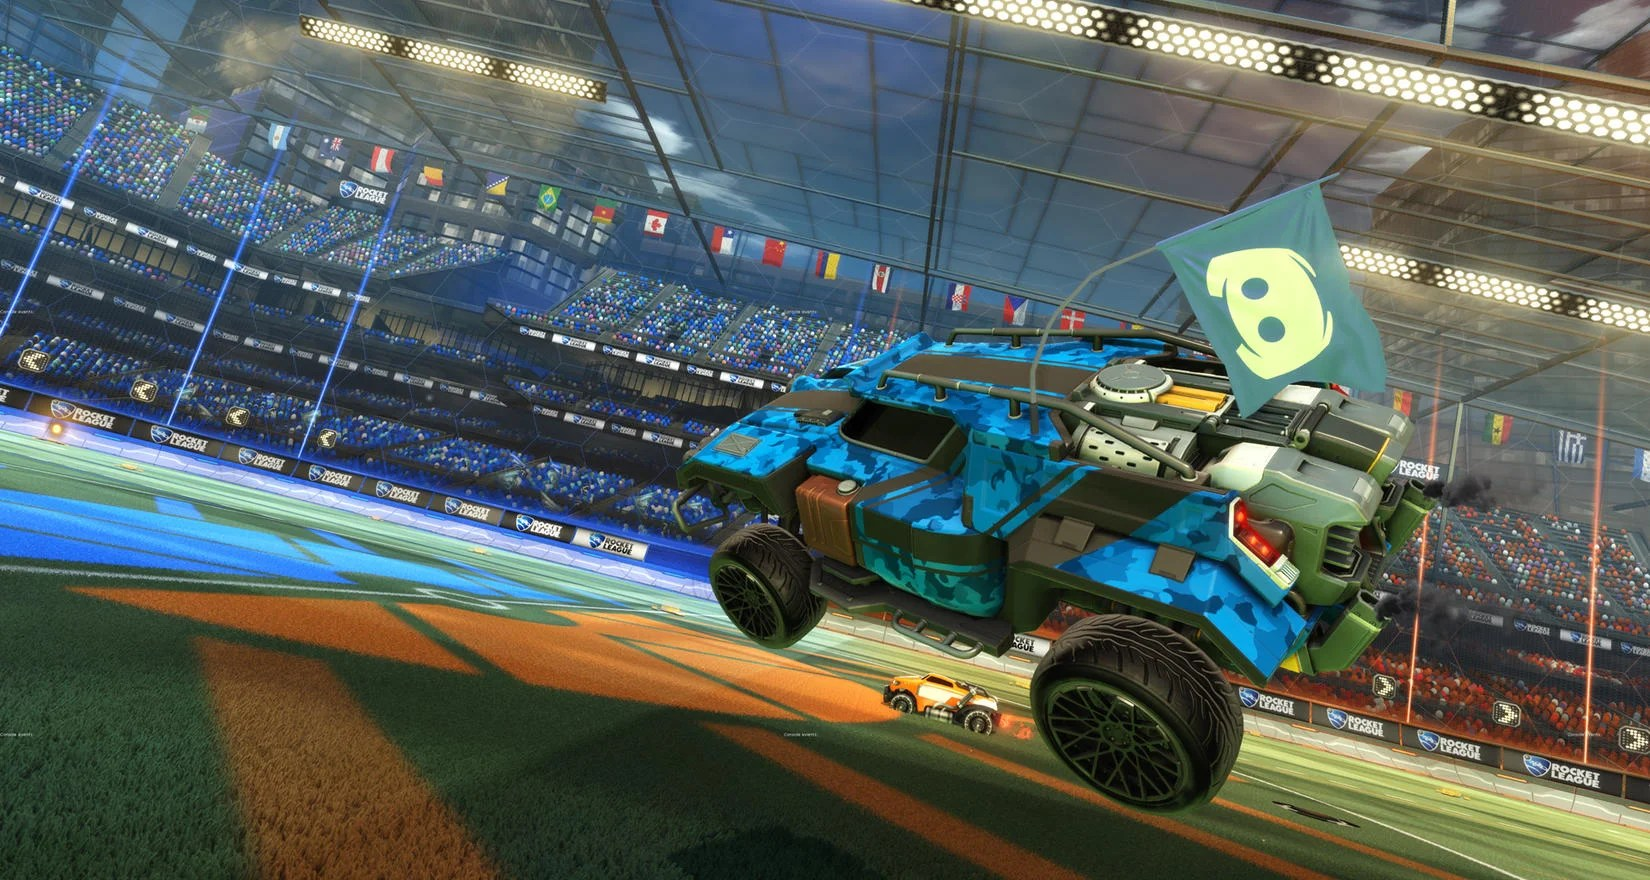 DISCORD COMMUNITY FLAG IN SEPTEMBER   Rocket League       Official Site DISCORD COMMUNITY FLAG IN SEPTEMBER Image